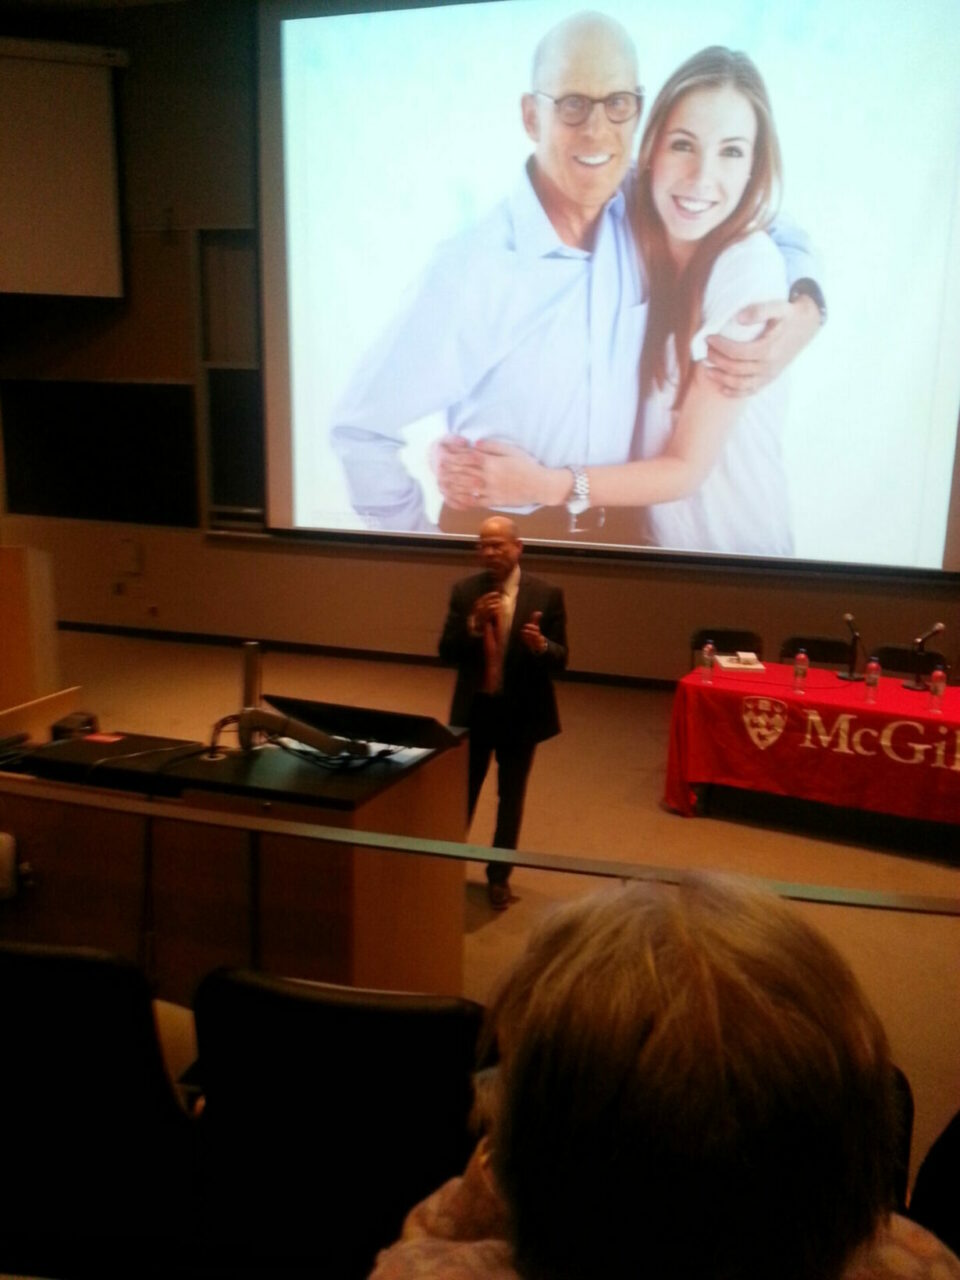 William Brock, BCom'77, BCL'78, LLB'80, closed the evening with an eloquent testimonial, told in six family photos, of how past supporters of cancer research had made it possible for him to see his children, including recent McGill grad, Julianne Brock, BCom'15, into adulthood. Photo: Annette Novak